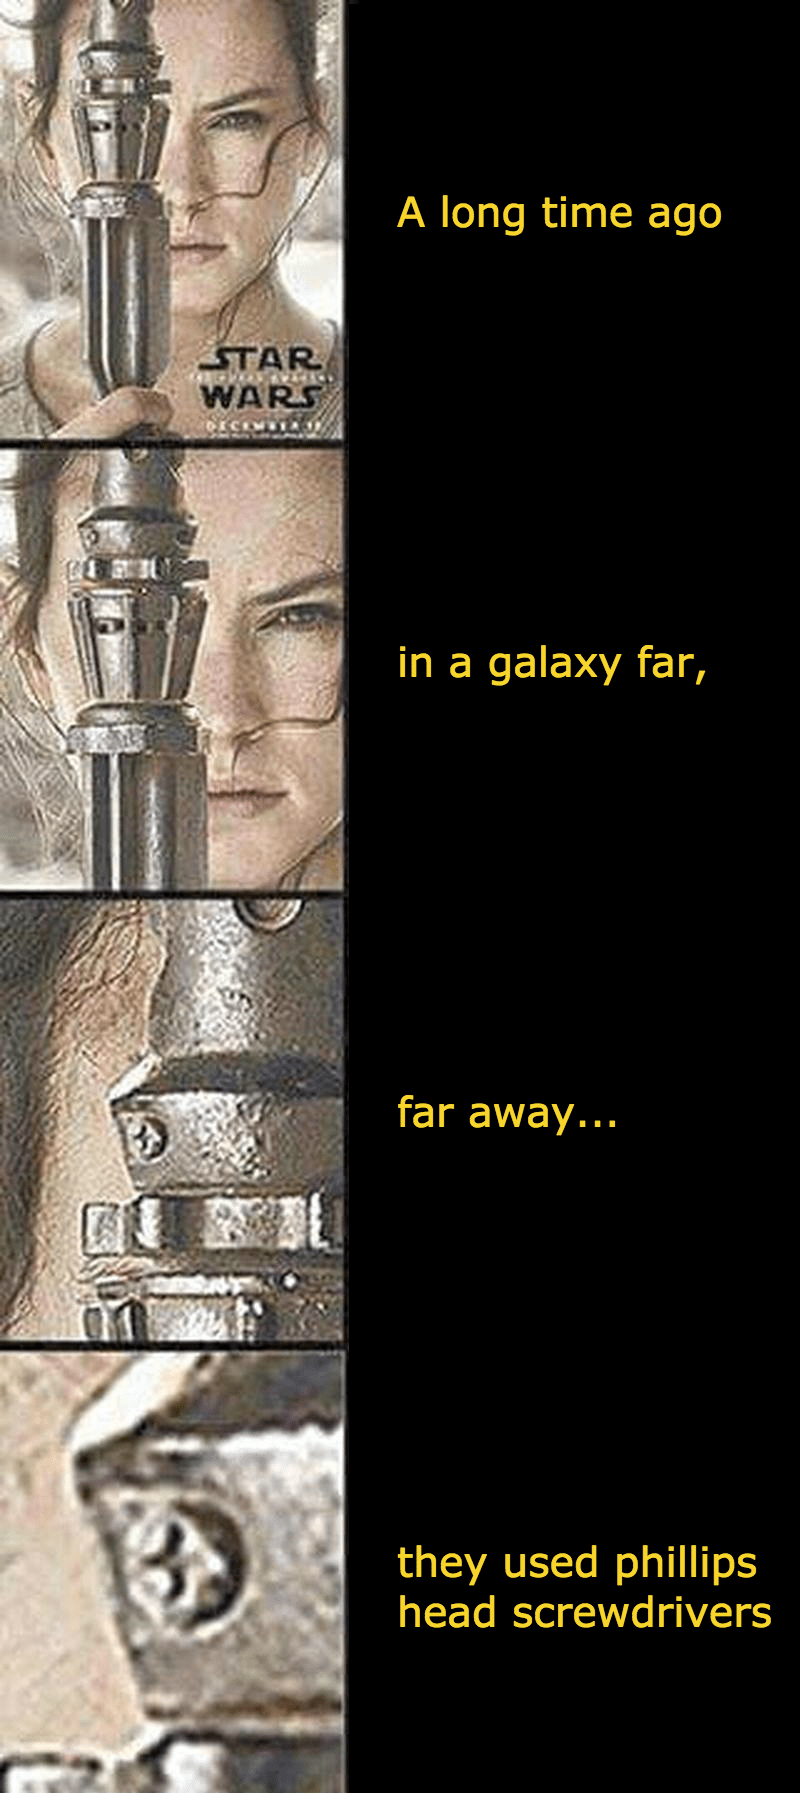 screwdriver scifi star wars seems legit - 8759291648